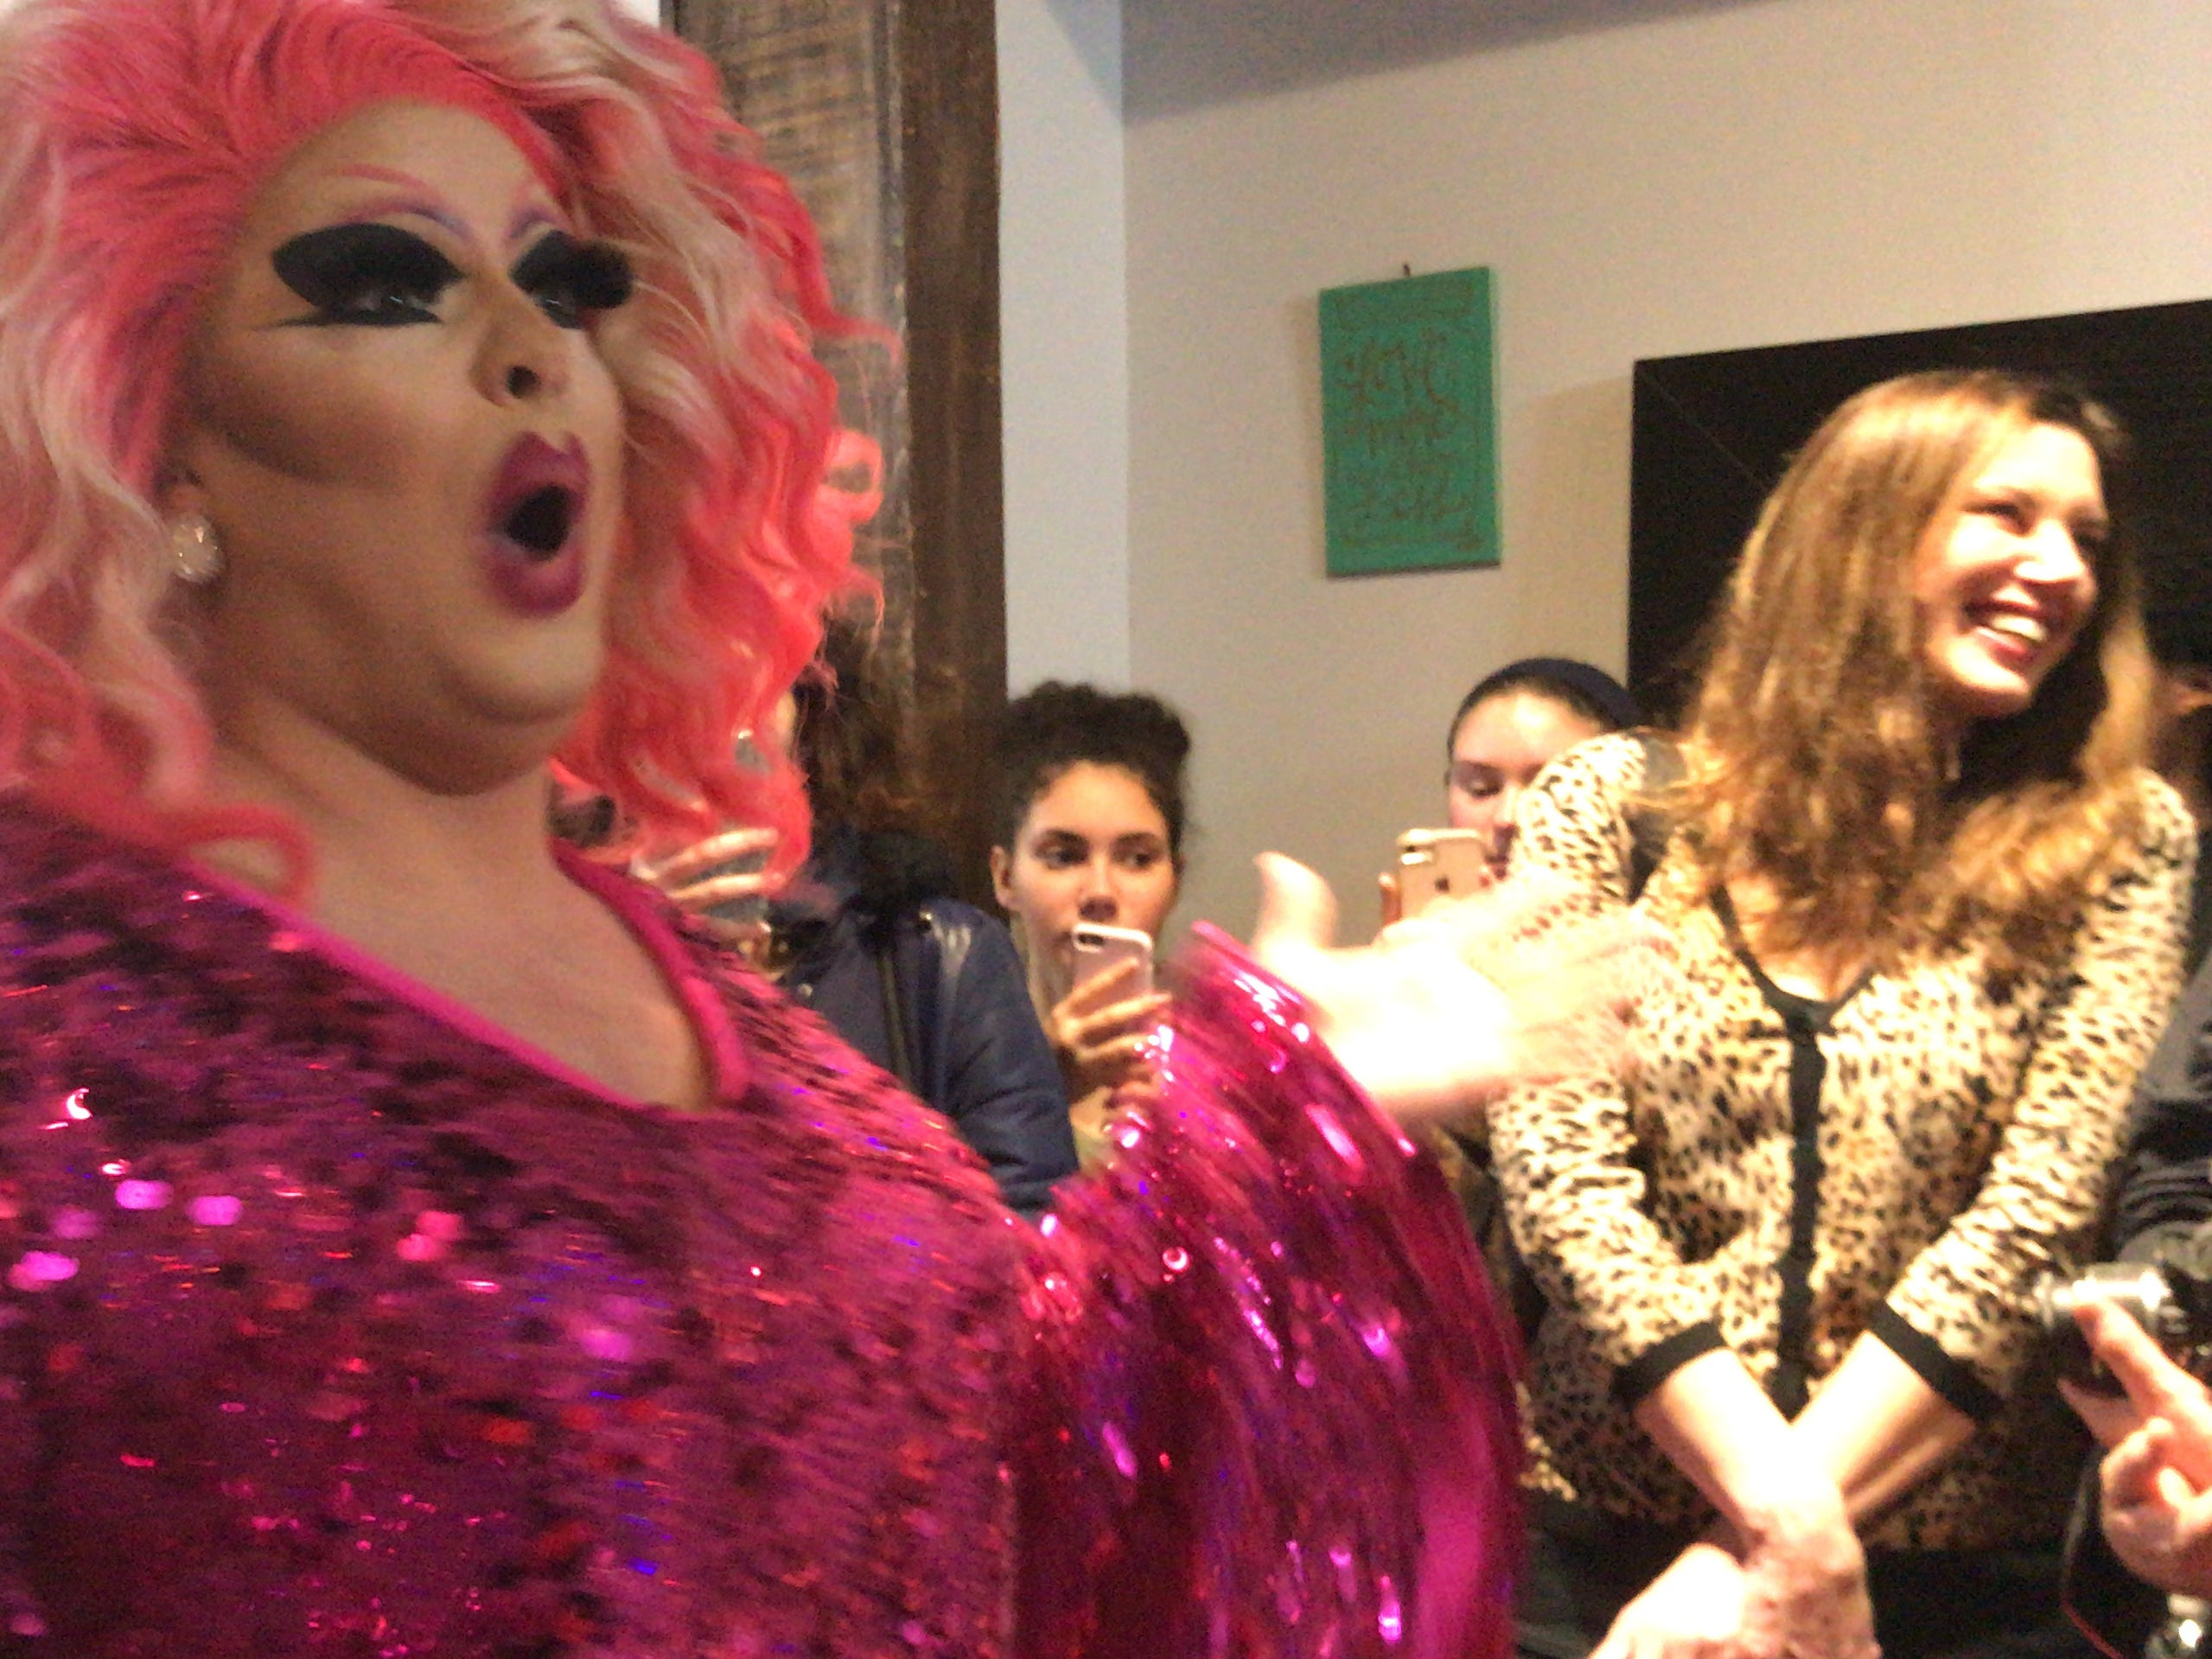 Somerville drag queen Pissi Myles at Illustrated Beauty in Somerville.